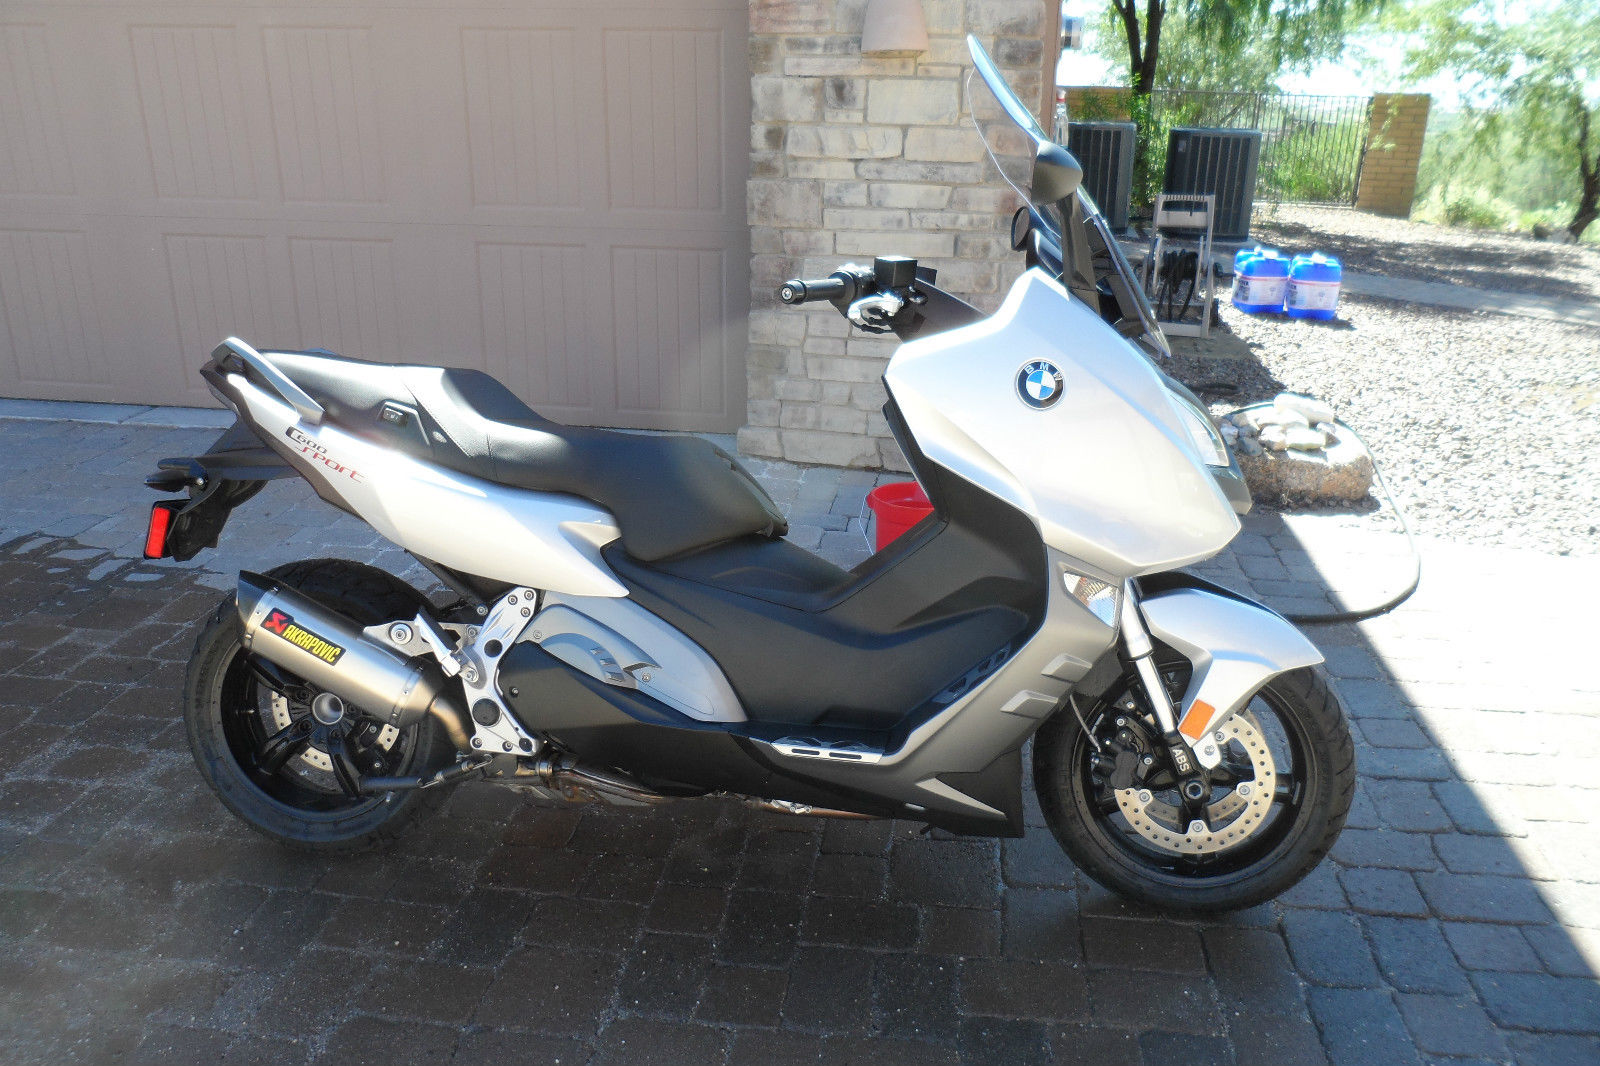 2013 bmw motorcycle scooter c600 sport 1401 miles mint. Black Bedroom Furniture Sets. Home Design Ideas